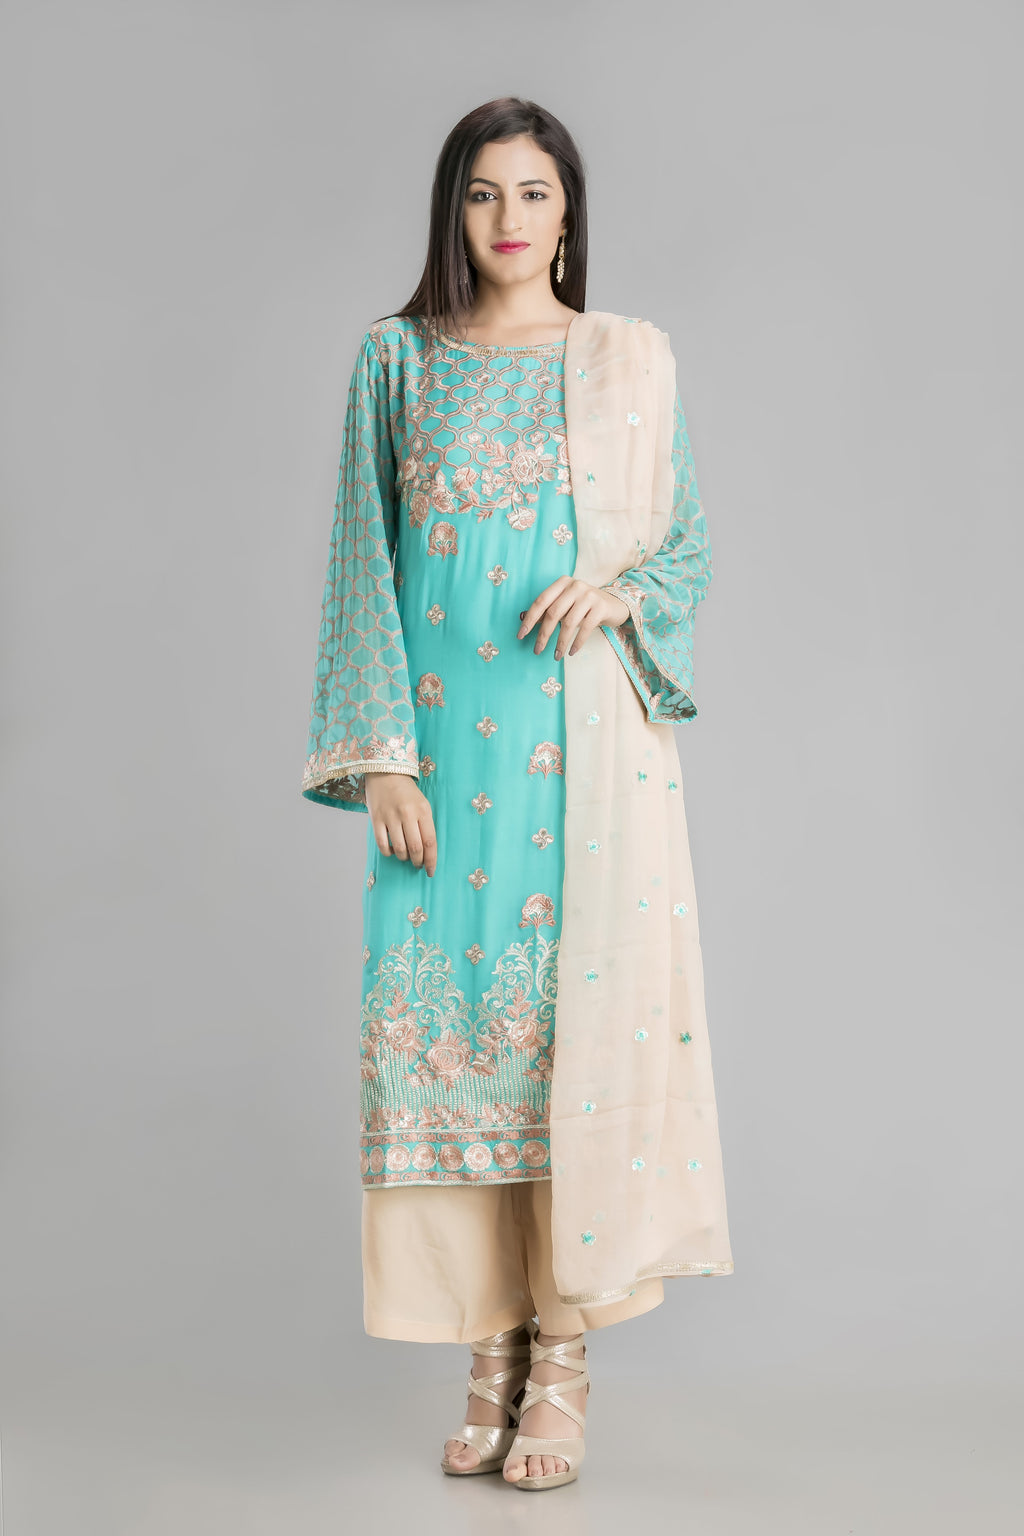 Vibrant Aqua Allure Embellished Suit with Palazzo-For Fresh feel Summer Evening and Festive Nights